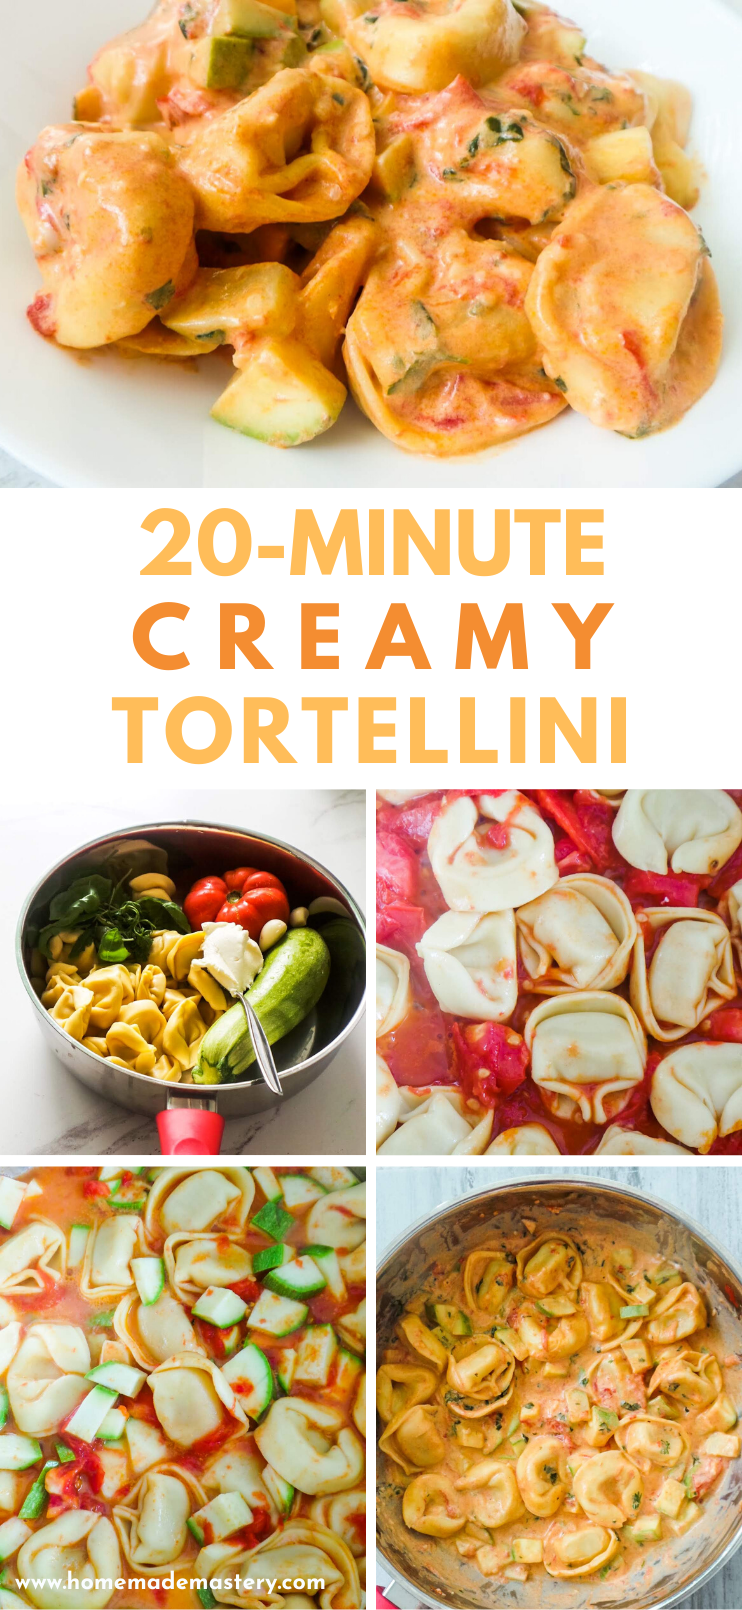 Easy vegetarian tortellini recipe! This creamy pasta recipe comes is kinda healthy, because it's full of fresh vegetables - zuchini, garlic, tomato, basil, greens and it's absolutely delicious. The creamy tortellini sauce is made with cream cheese for convenience! This easy pasta recipe will take around 20 minutes to make and is perfect for a weeknight dinner for two or if you're very hungry - one!